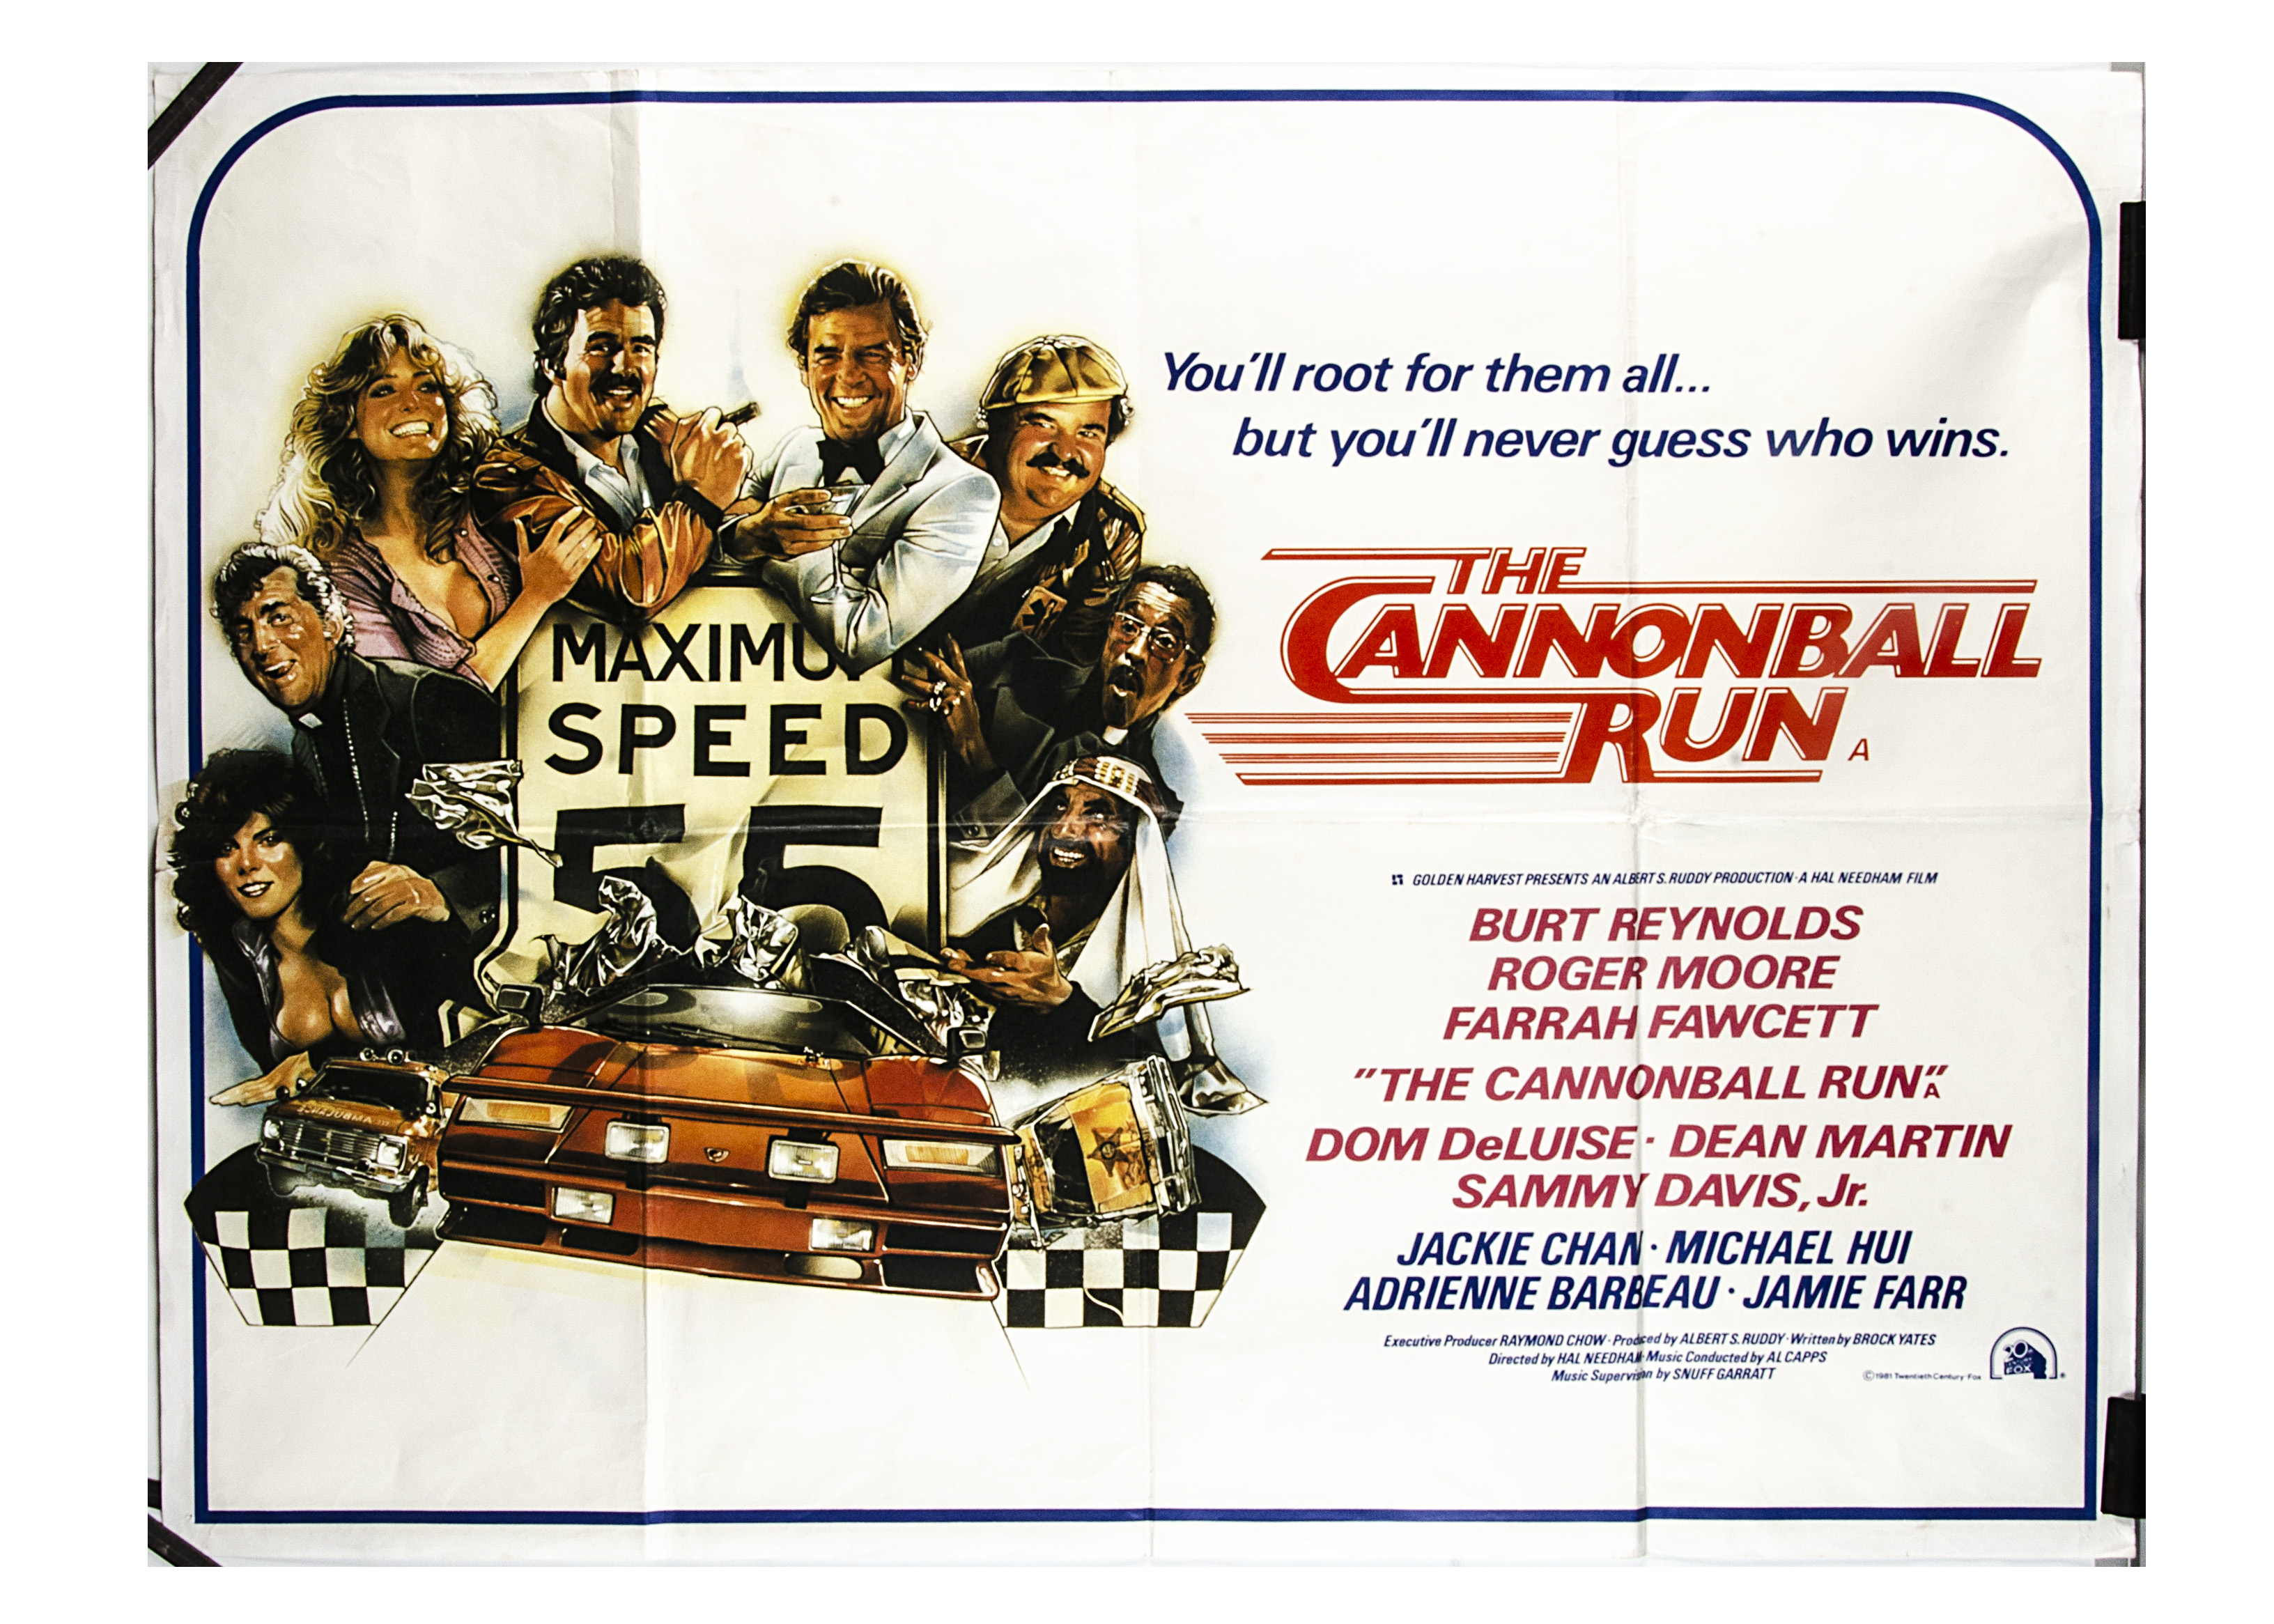 Cannonball Run UK Quad Poster, Cannonball Run (1981) UK Quad cinema poster, for the road movie